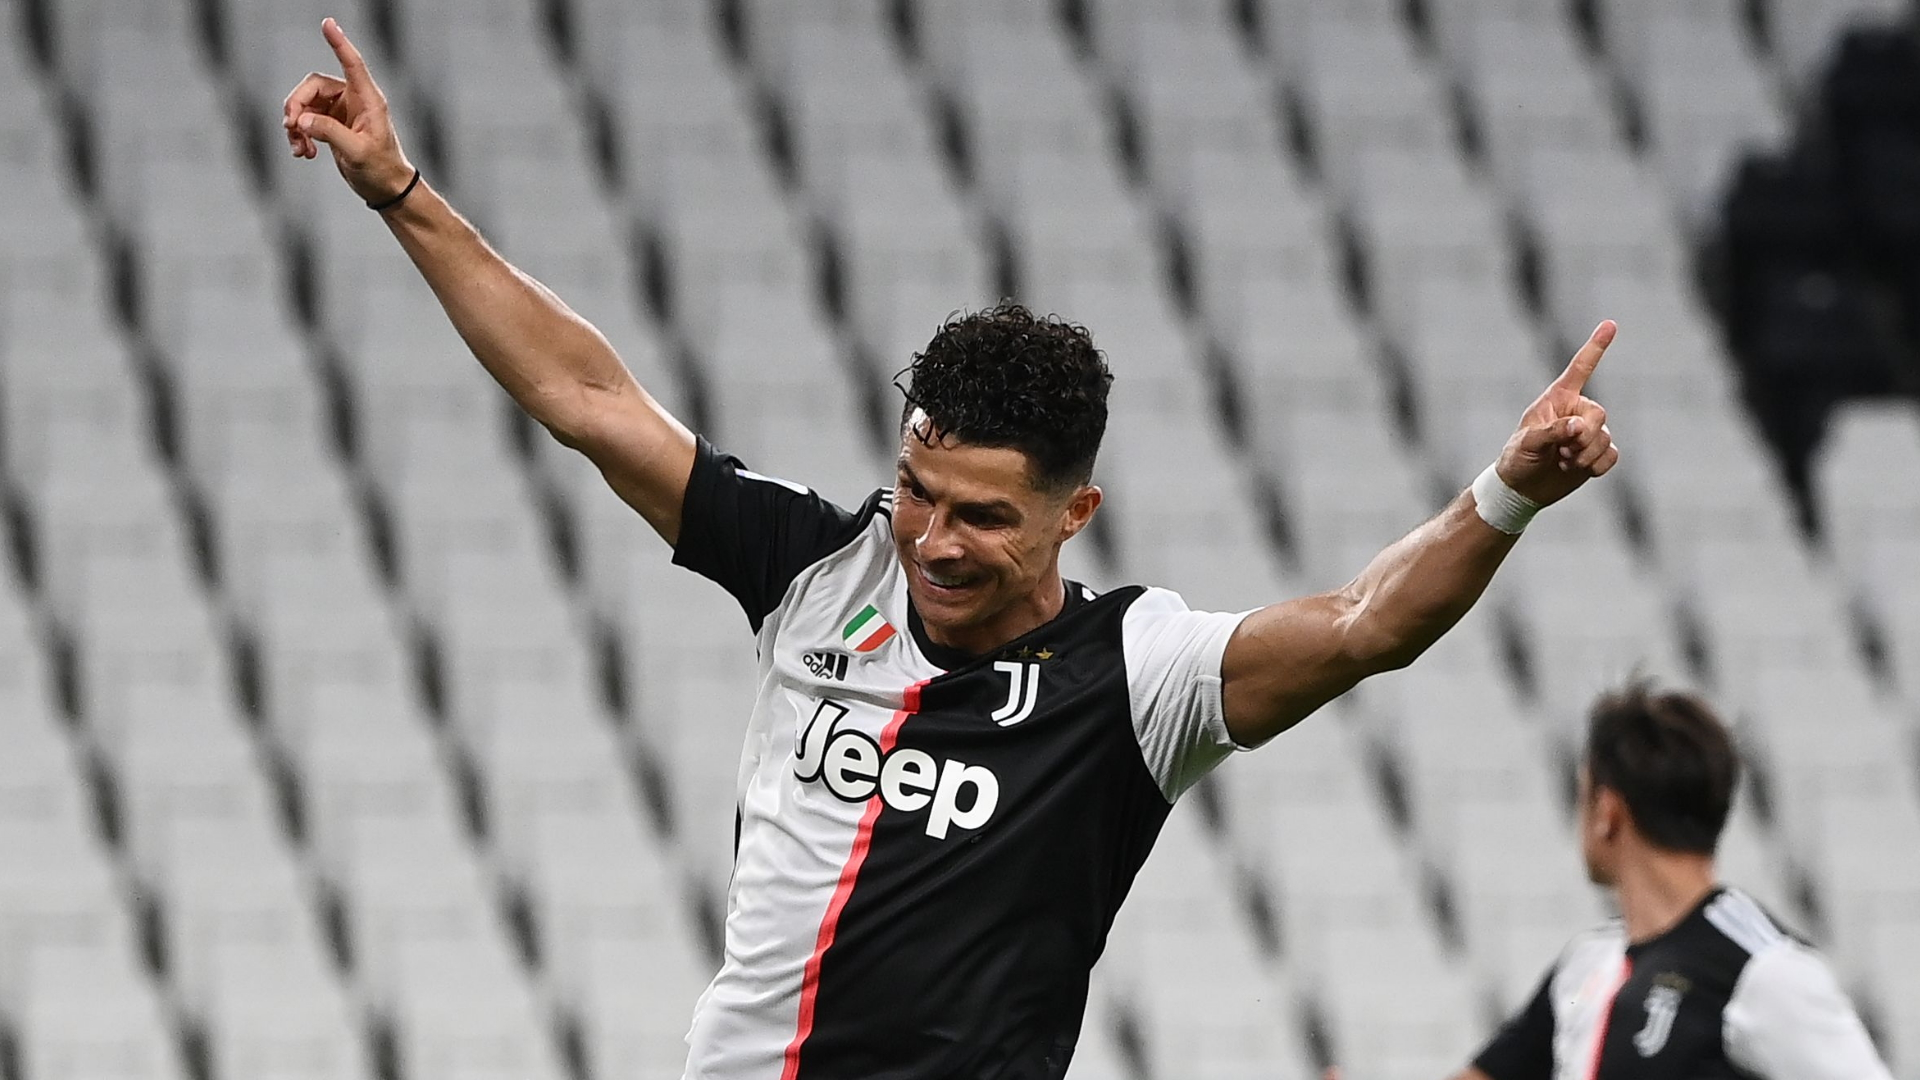 Ronaldo scores twice as Juventus beat Lazio in Serie A